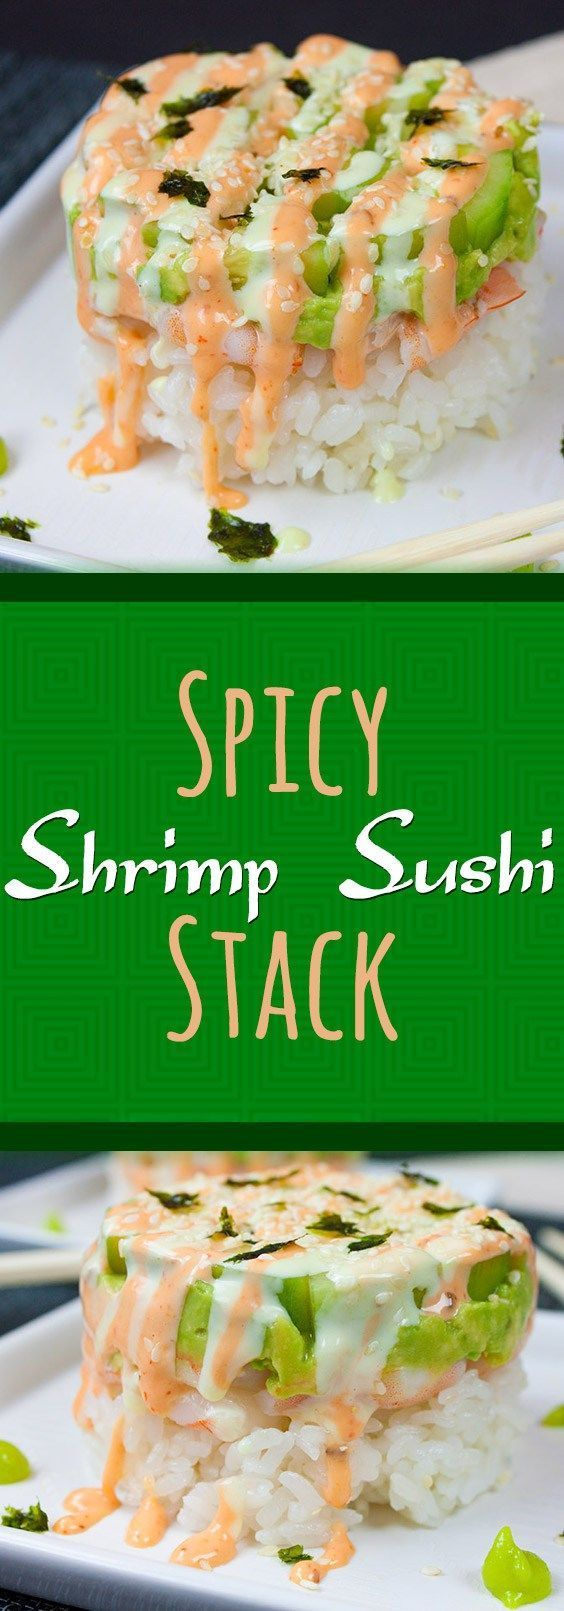 Spicy Shrimp Sushi Stack – The sauces take this su…